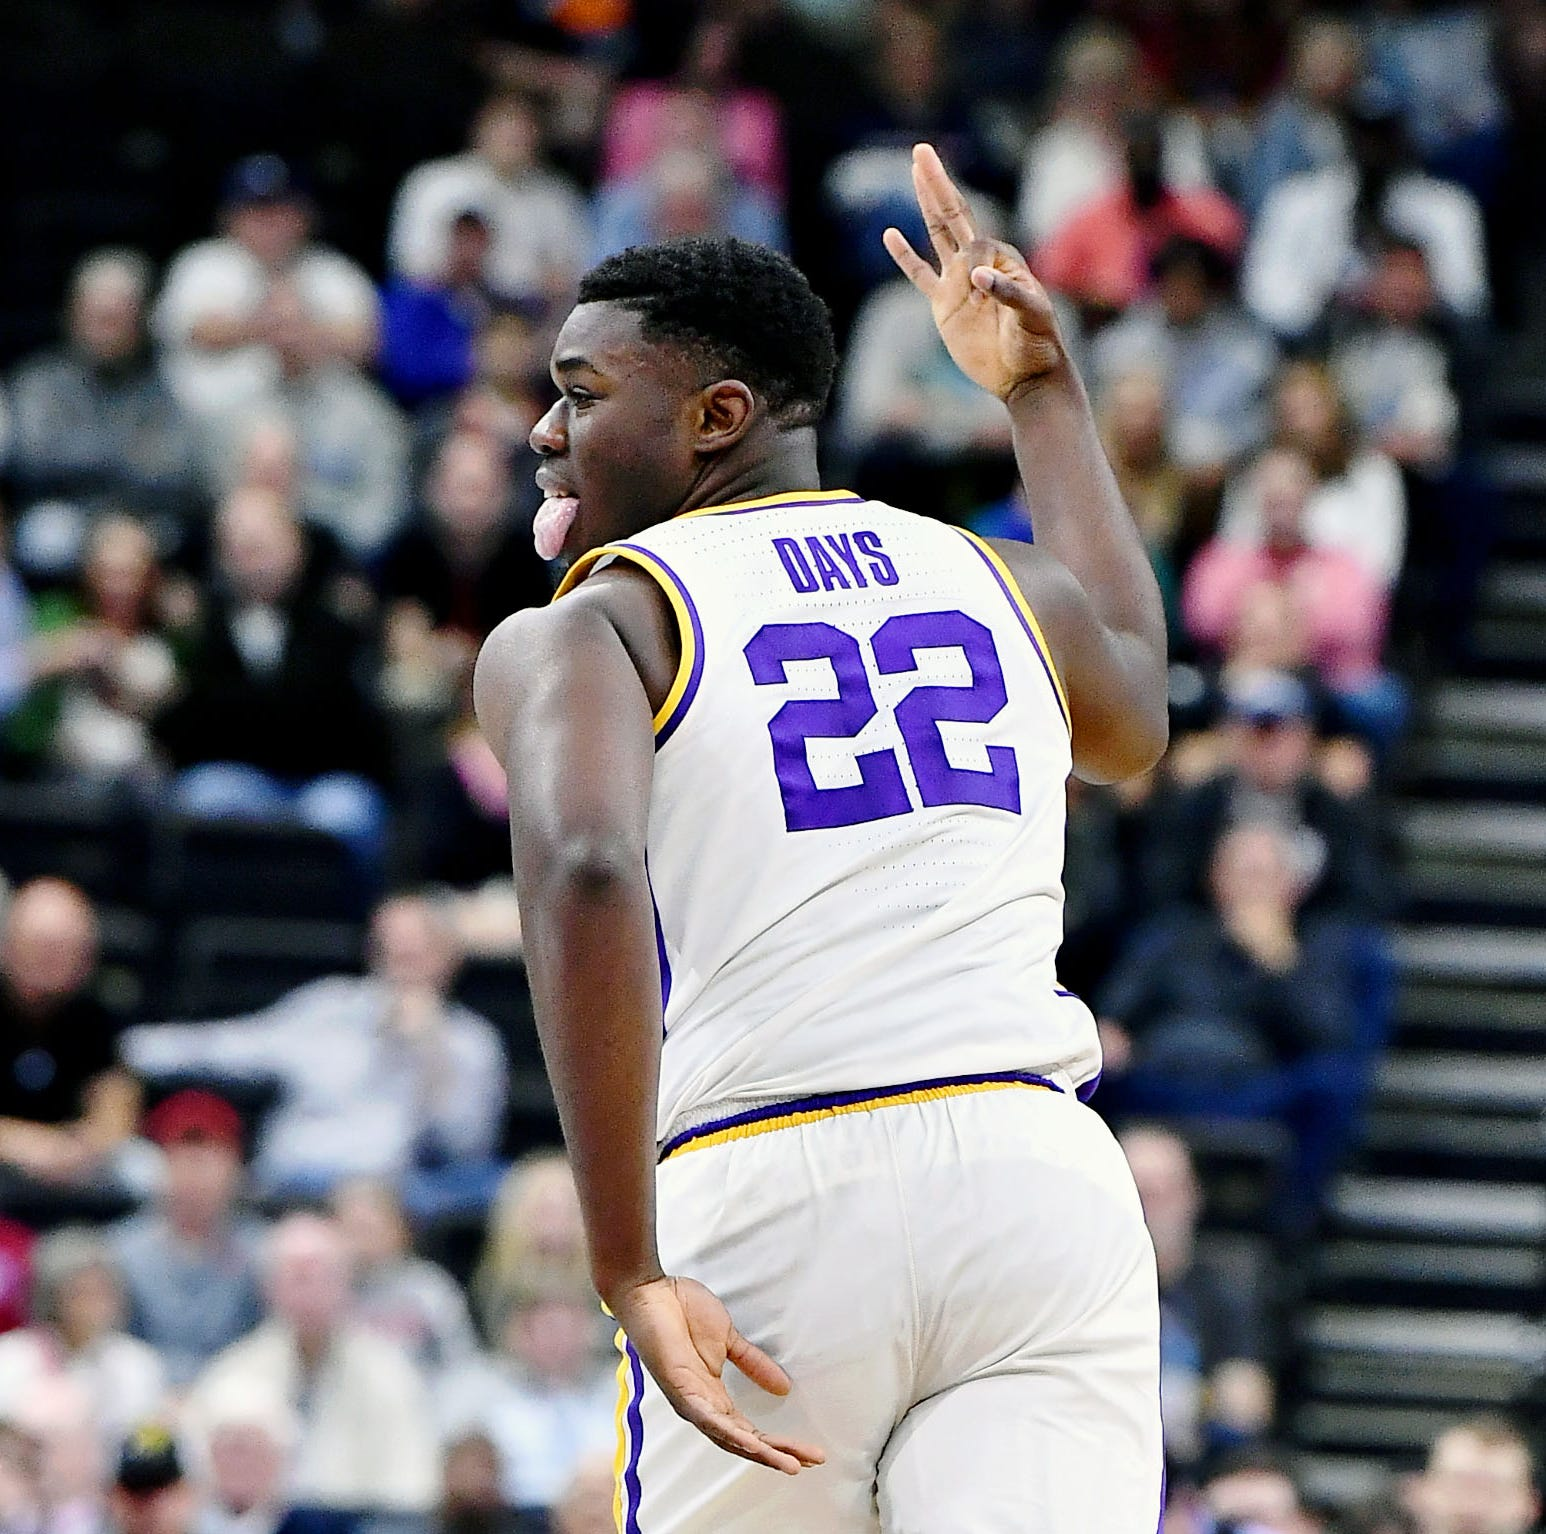 NCAA Tournament 2019: LSU vs. Maryland basketball video highlights, score